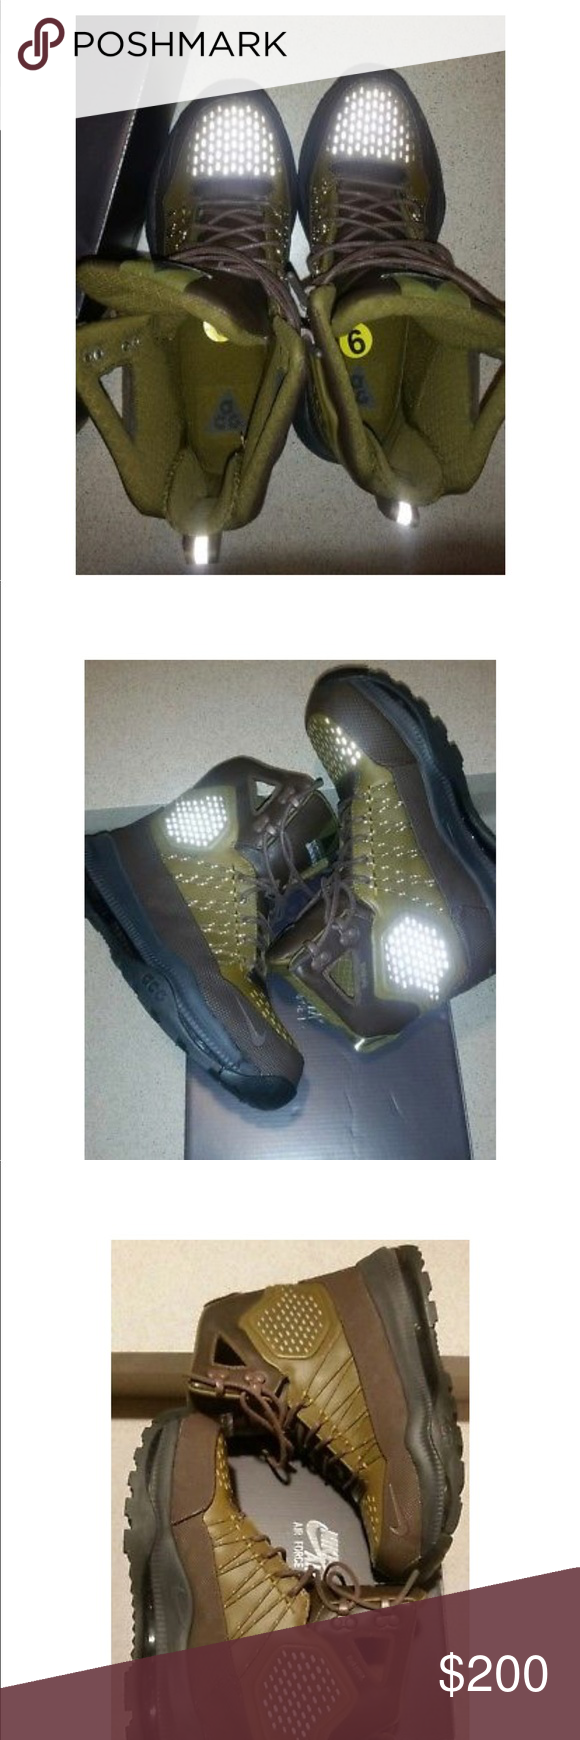 20a9d92a4f0e Nike ACG Zoom Superdome Flywire Ultra Hiking Boots The Nike Zoom Superdome  ACG 654886-230